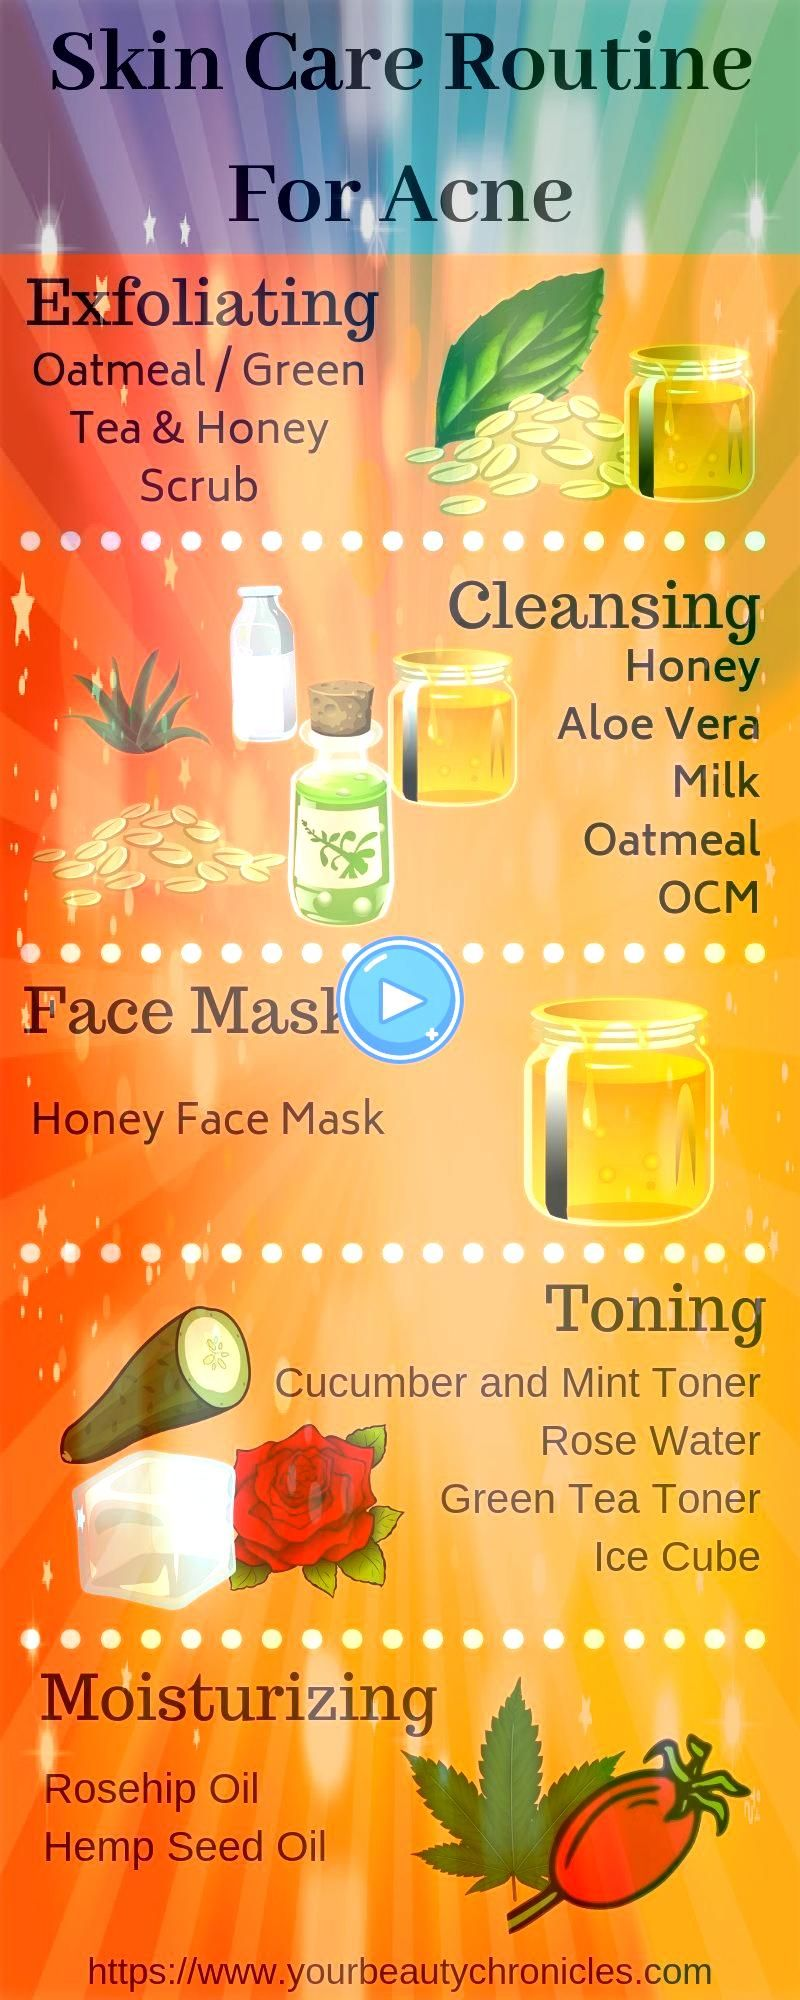 All Natural Skin Care Routine For Acne The All Natural Skin Care Routine For Acne Skin Care natural skin careThe All Natural Skin Care Routine For Acne Skin Care natural...